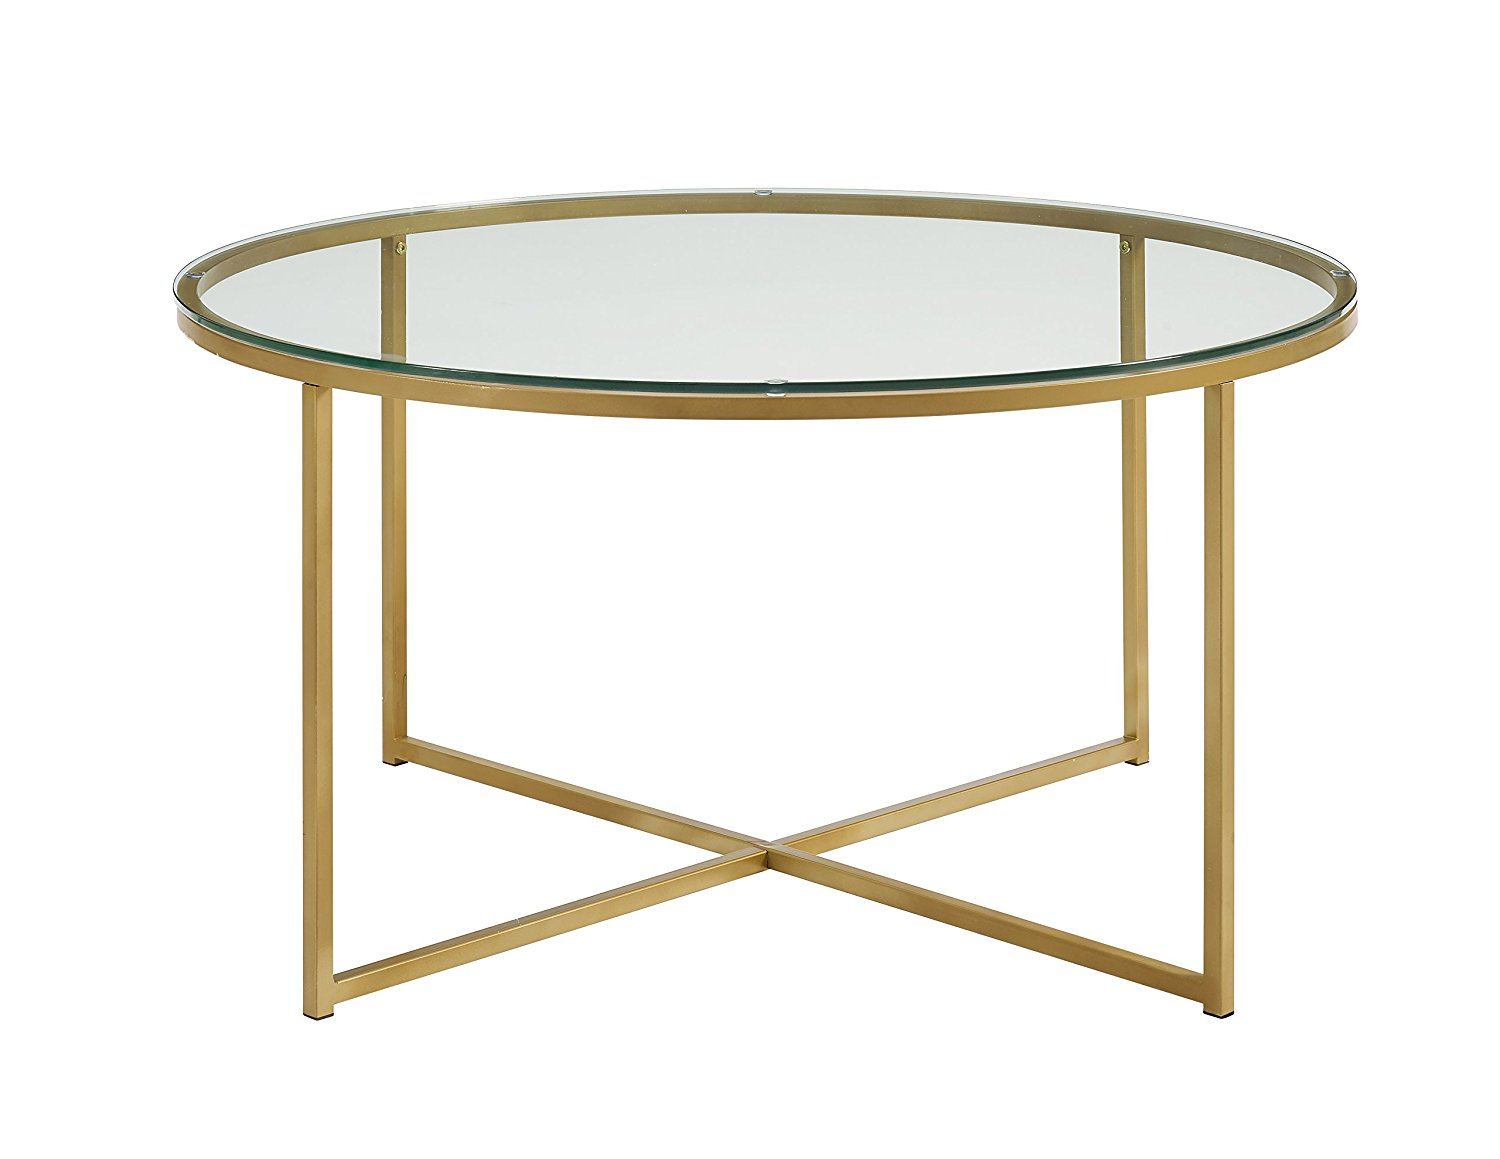 refresh your living space with these budget friendly home decor glass coffee table shkgds lorelei accent finds healthyway moon chair target side cabinet room acrylic and gold grey